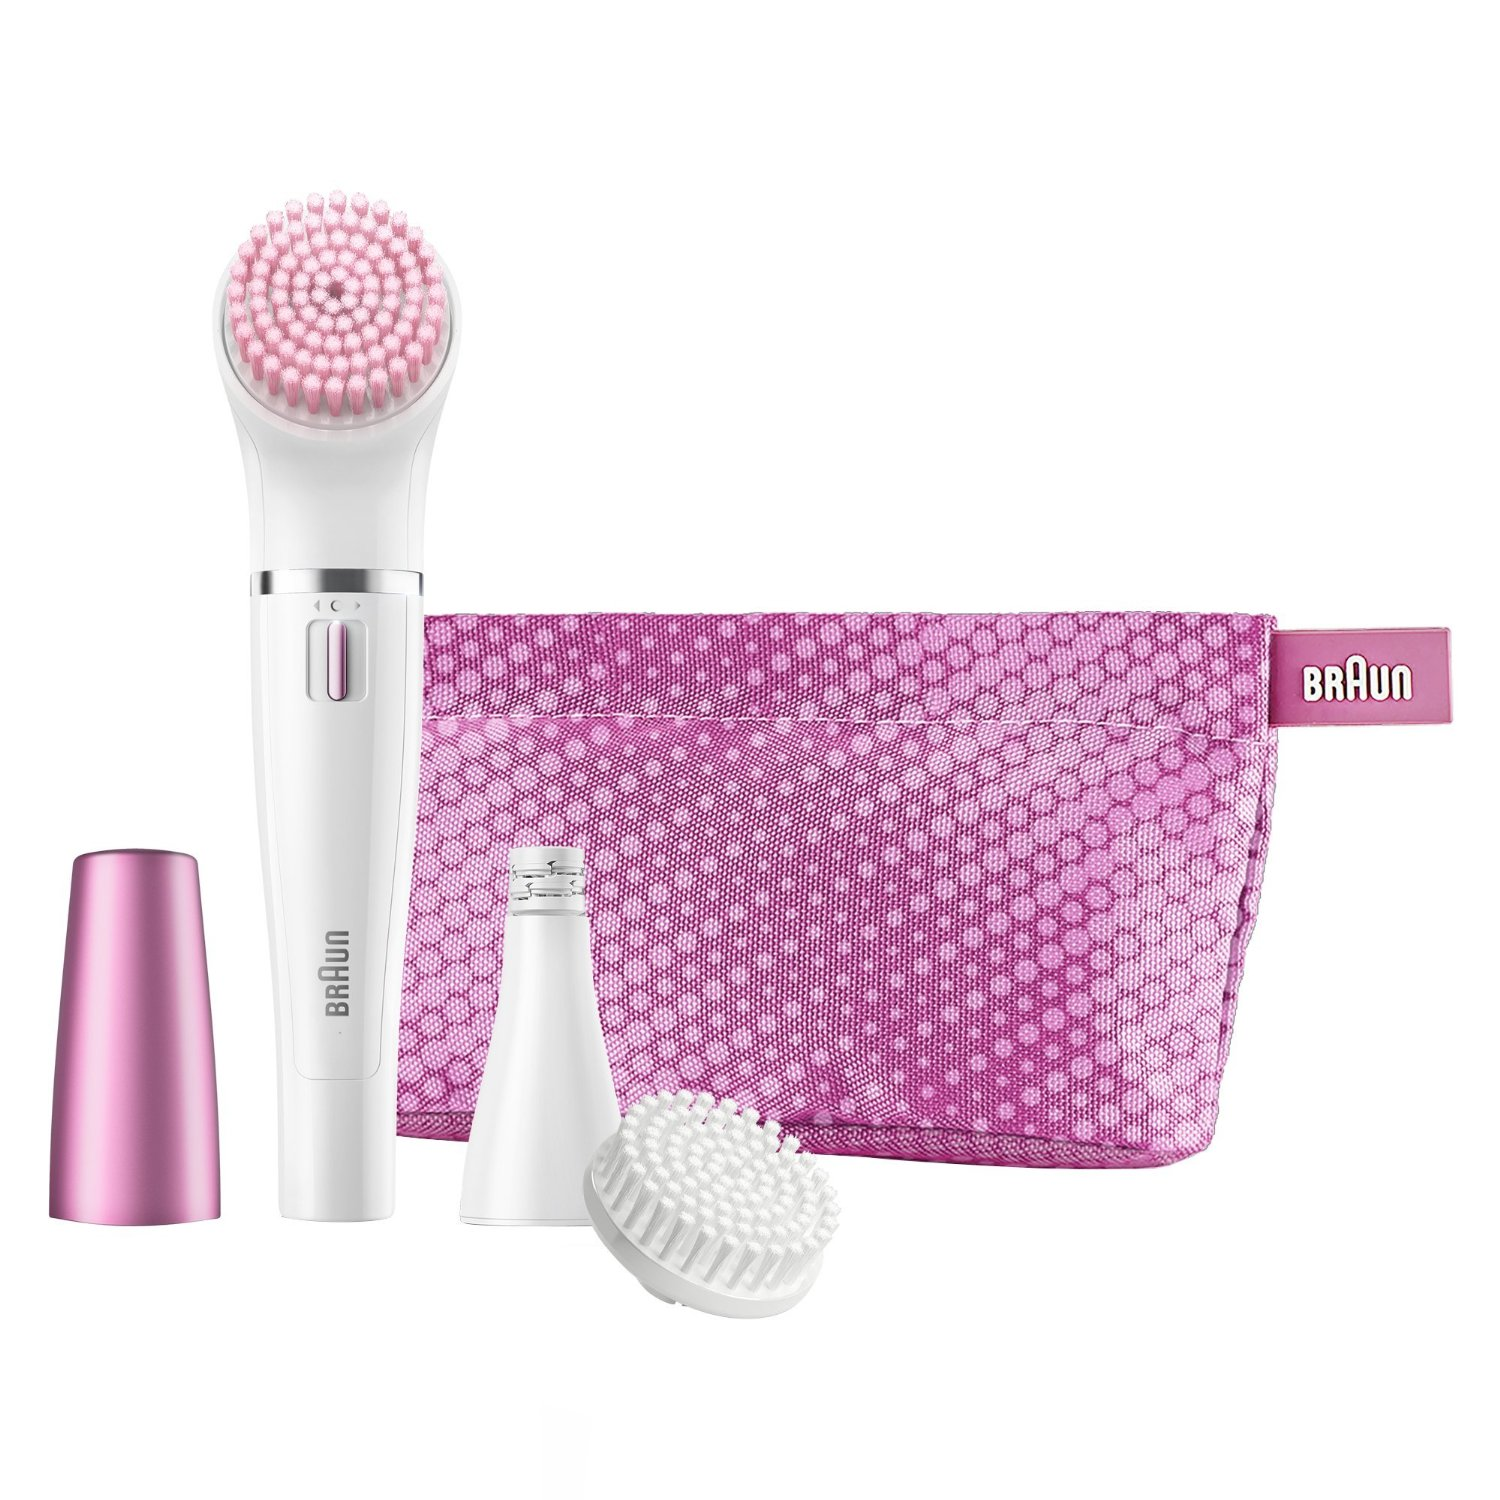 Braun Face Epilator and facial cleansing brush  SE832S Number of intensity levels 1, White/ pink Epilators